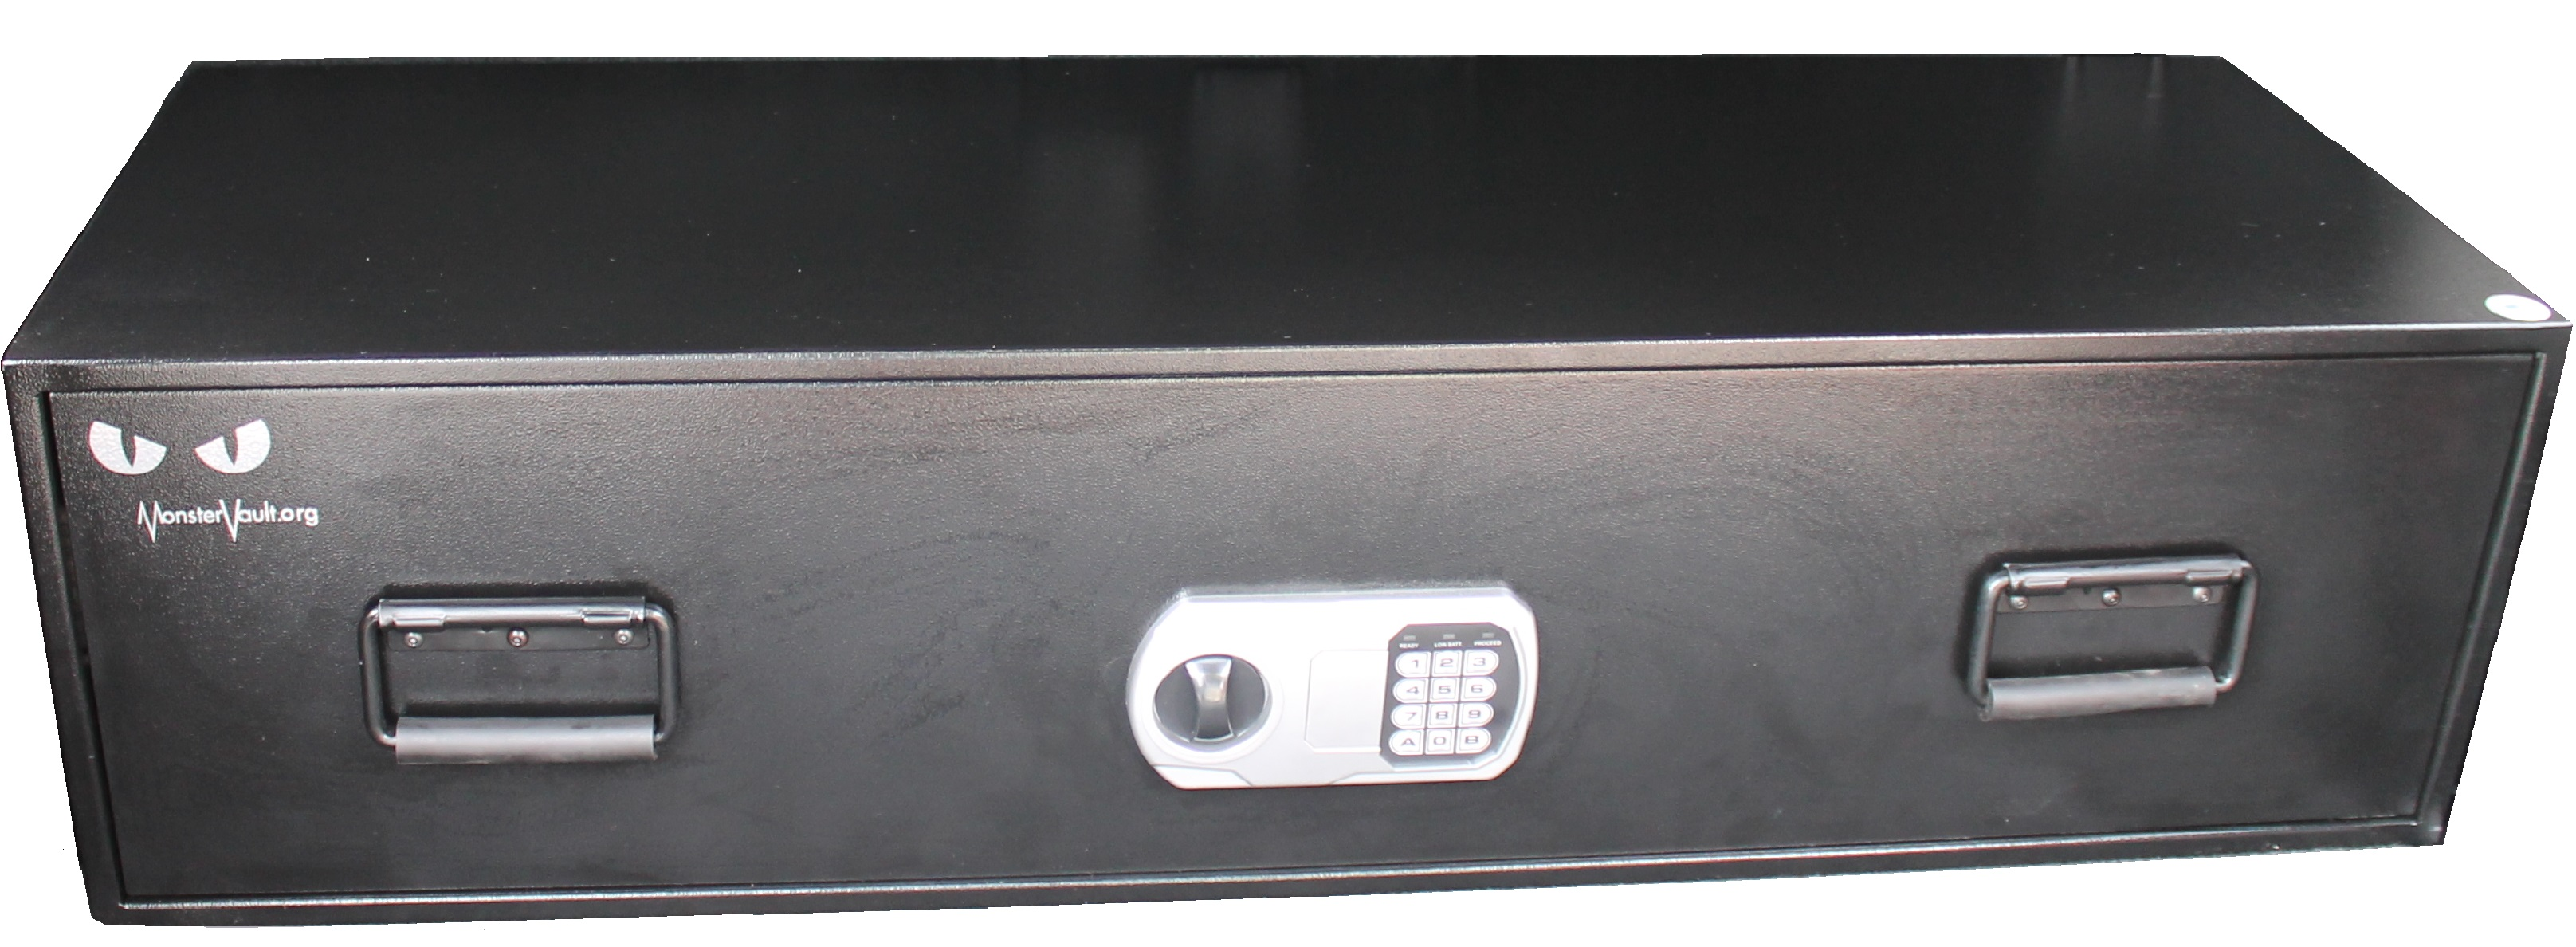 MonsterVault Tactical Safe